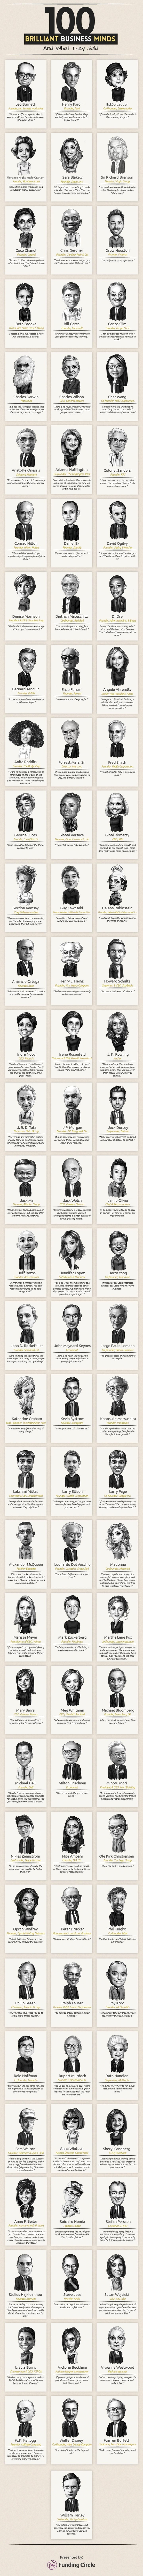 100 Brilliant Business Minds and What They Said #Infographic ...